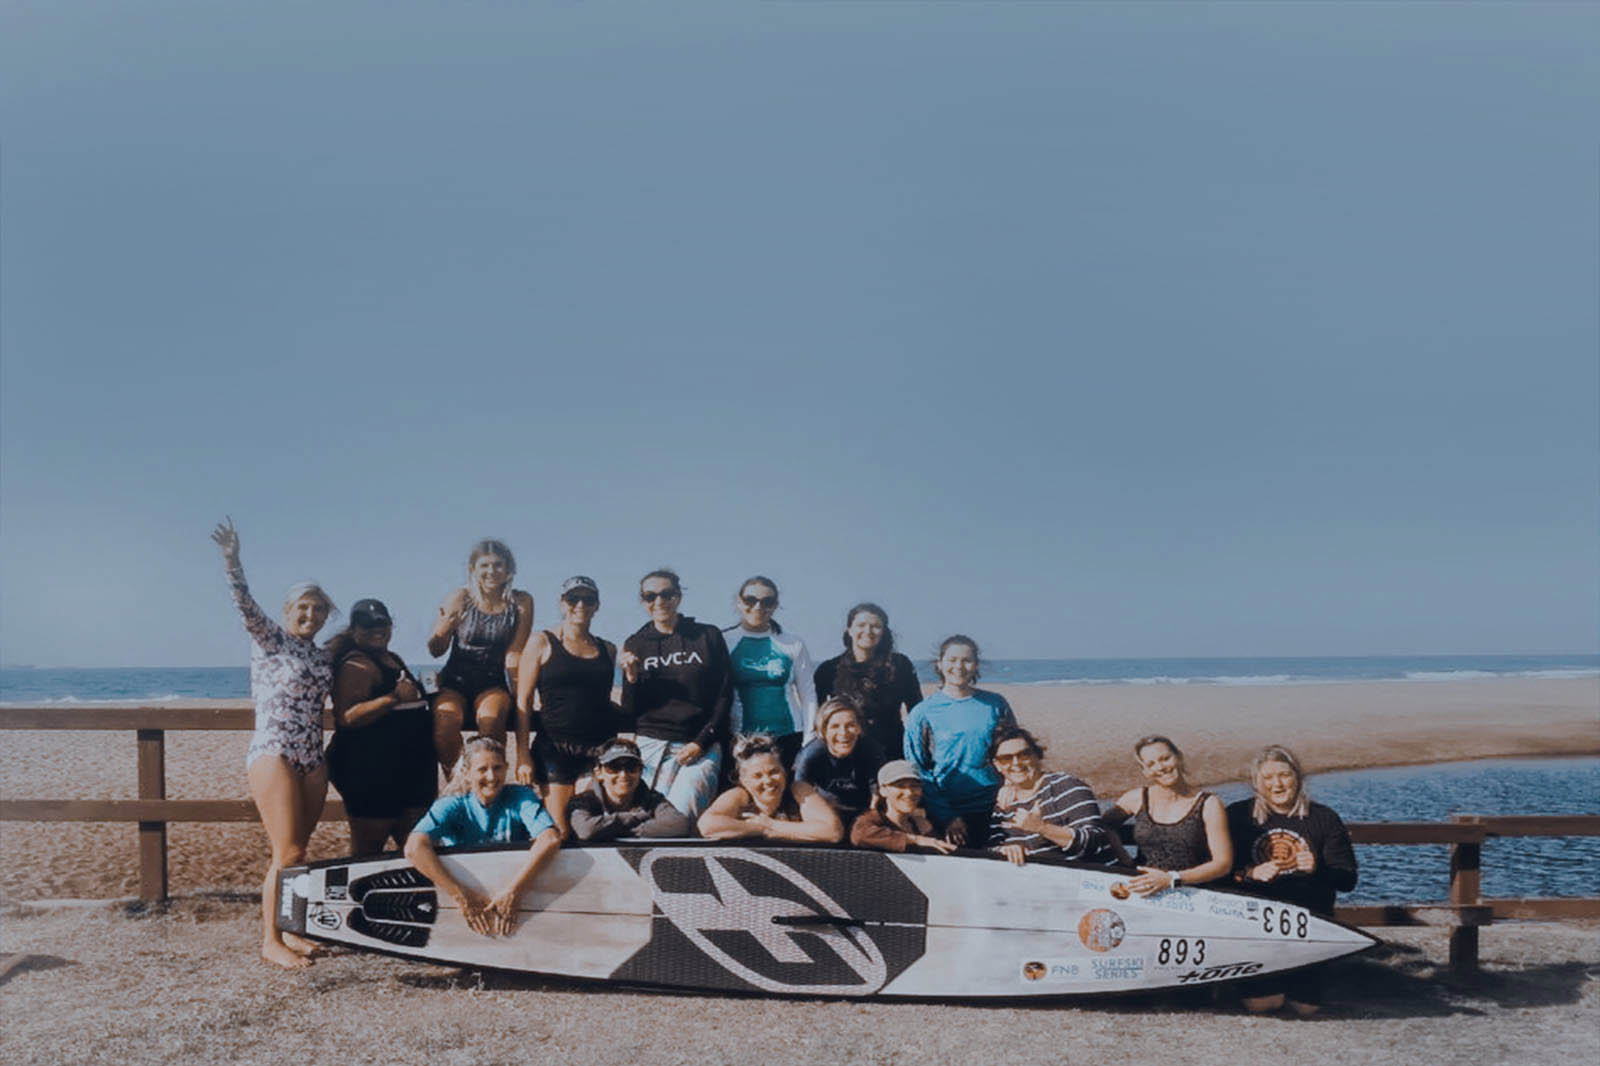 Sup, Surf or Boogie Board - Blue Betty encourages ladies to try something new and to have fun doing it. Learn to surf, bodyboard or stand up paddle board in a safe and fun environment that will leave you coming back for more.